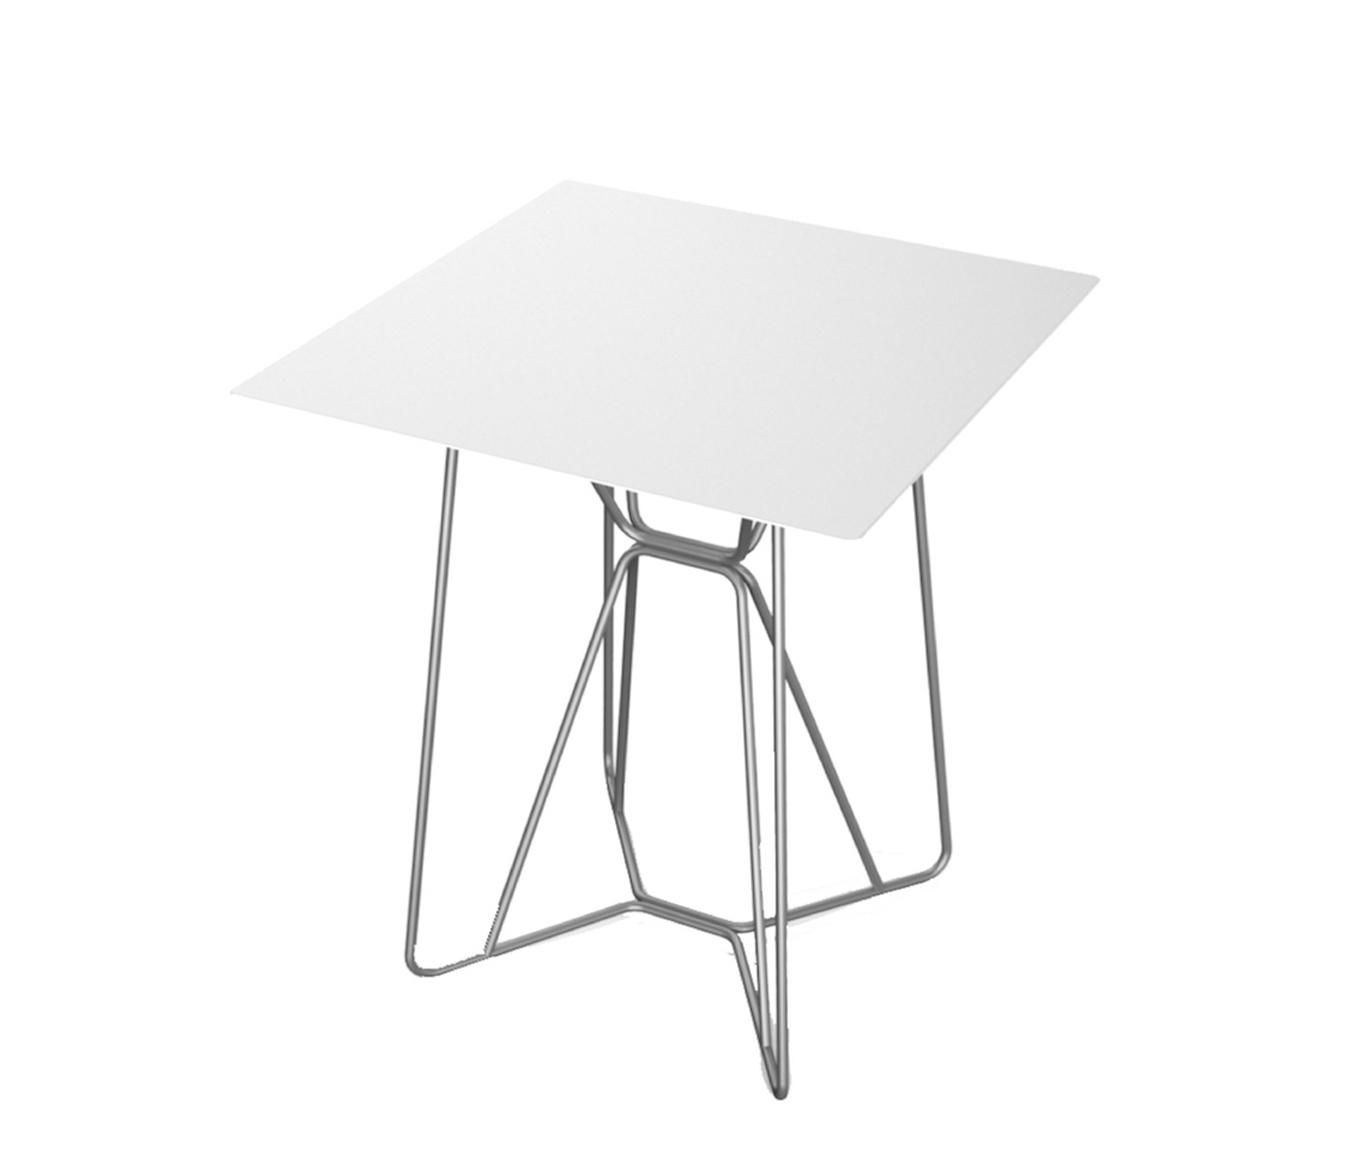 SLIM COLLECTION DINING TABLE SQUARE 64 Dining Tables